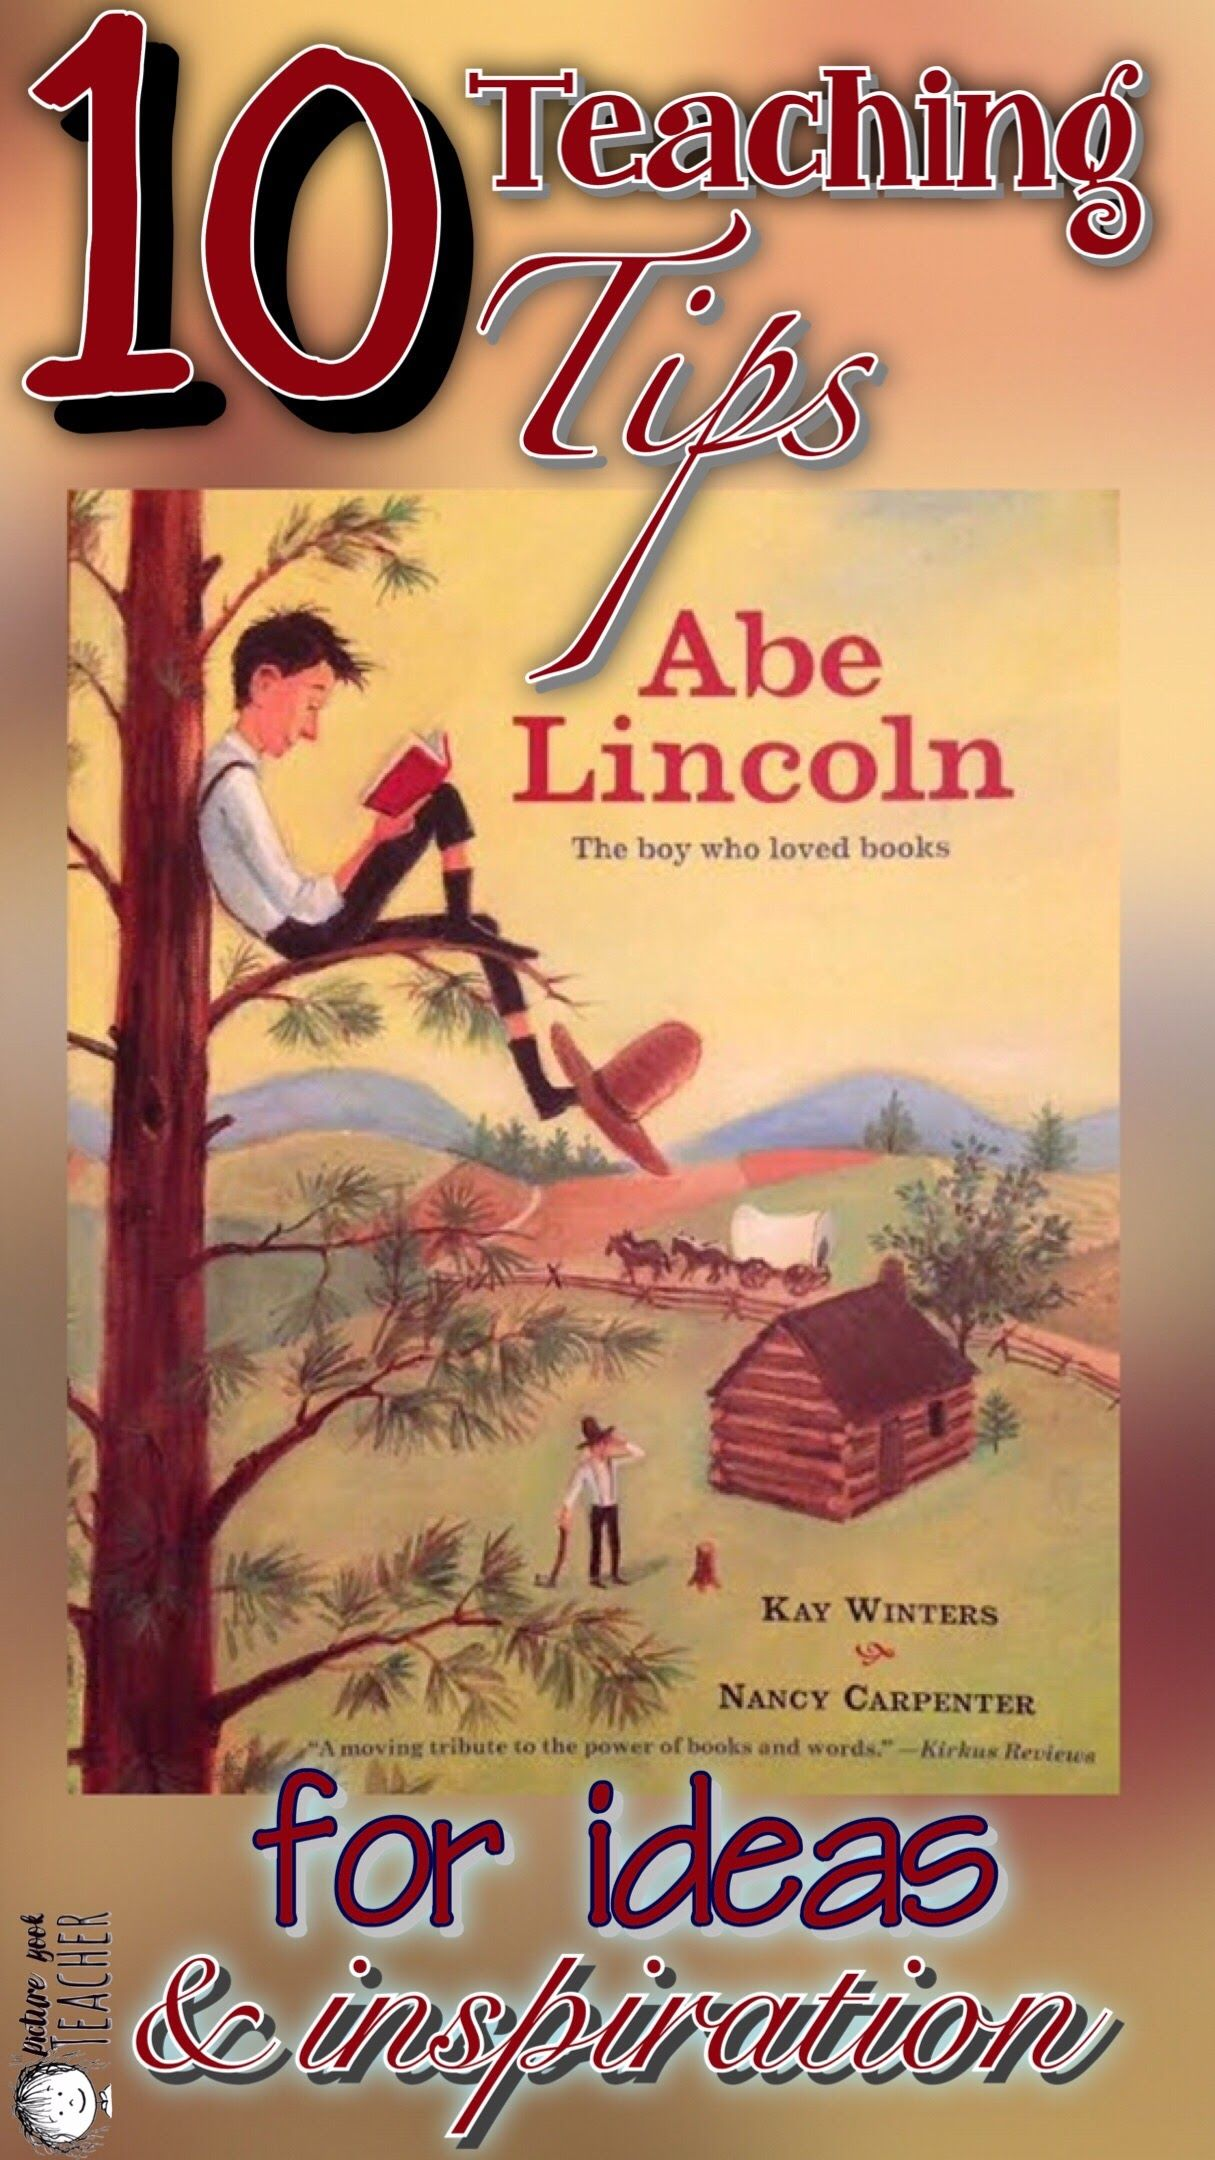 Abe Lincoln The Boy Who Loved To Read By Kay Winters